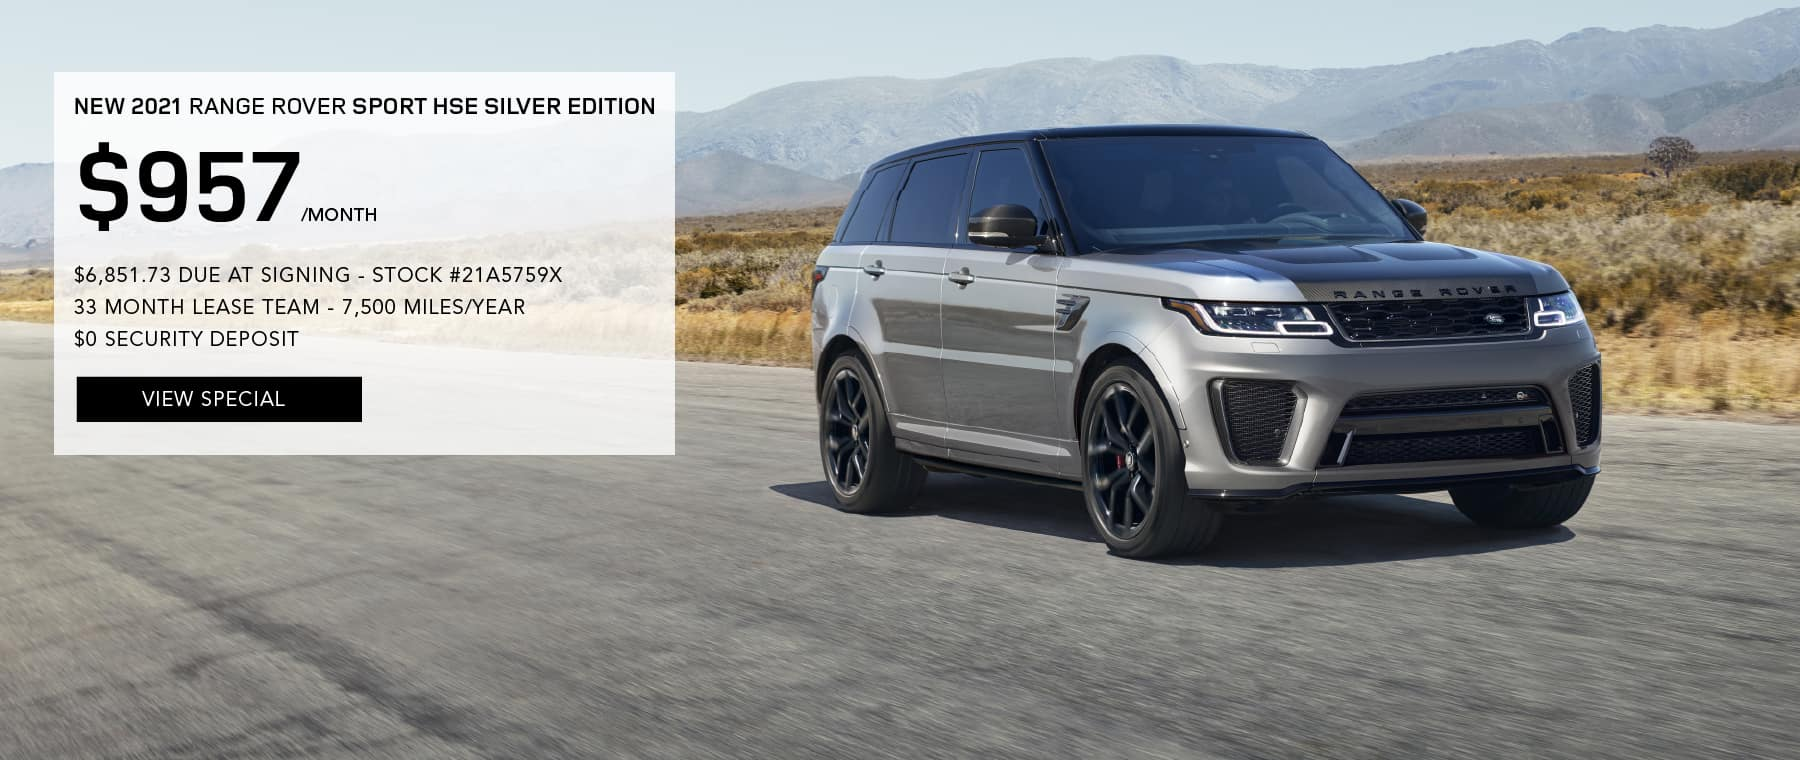 2021 RANGE ROVER SPORT SILVER EDITION. $957 PER MONTH FOR 39 MONTHS. $6,851.73 DUE AT SIGNING. STOCK #21A5759X. 7,500 MILES/YEAR. $0 SECURITY DEPOSIT. VIEW SPECIAL. SILVER RANGE ROVER SPORT DRIVING THROUGH DESERT.